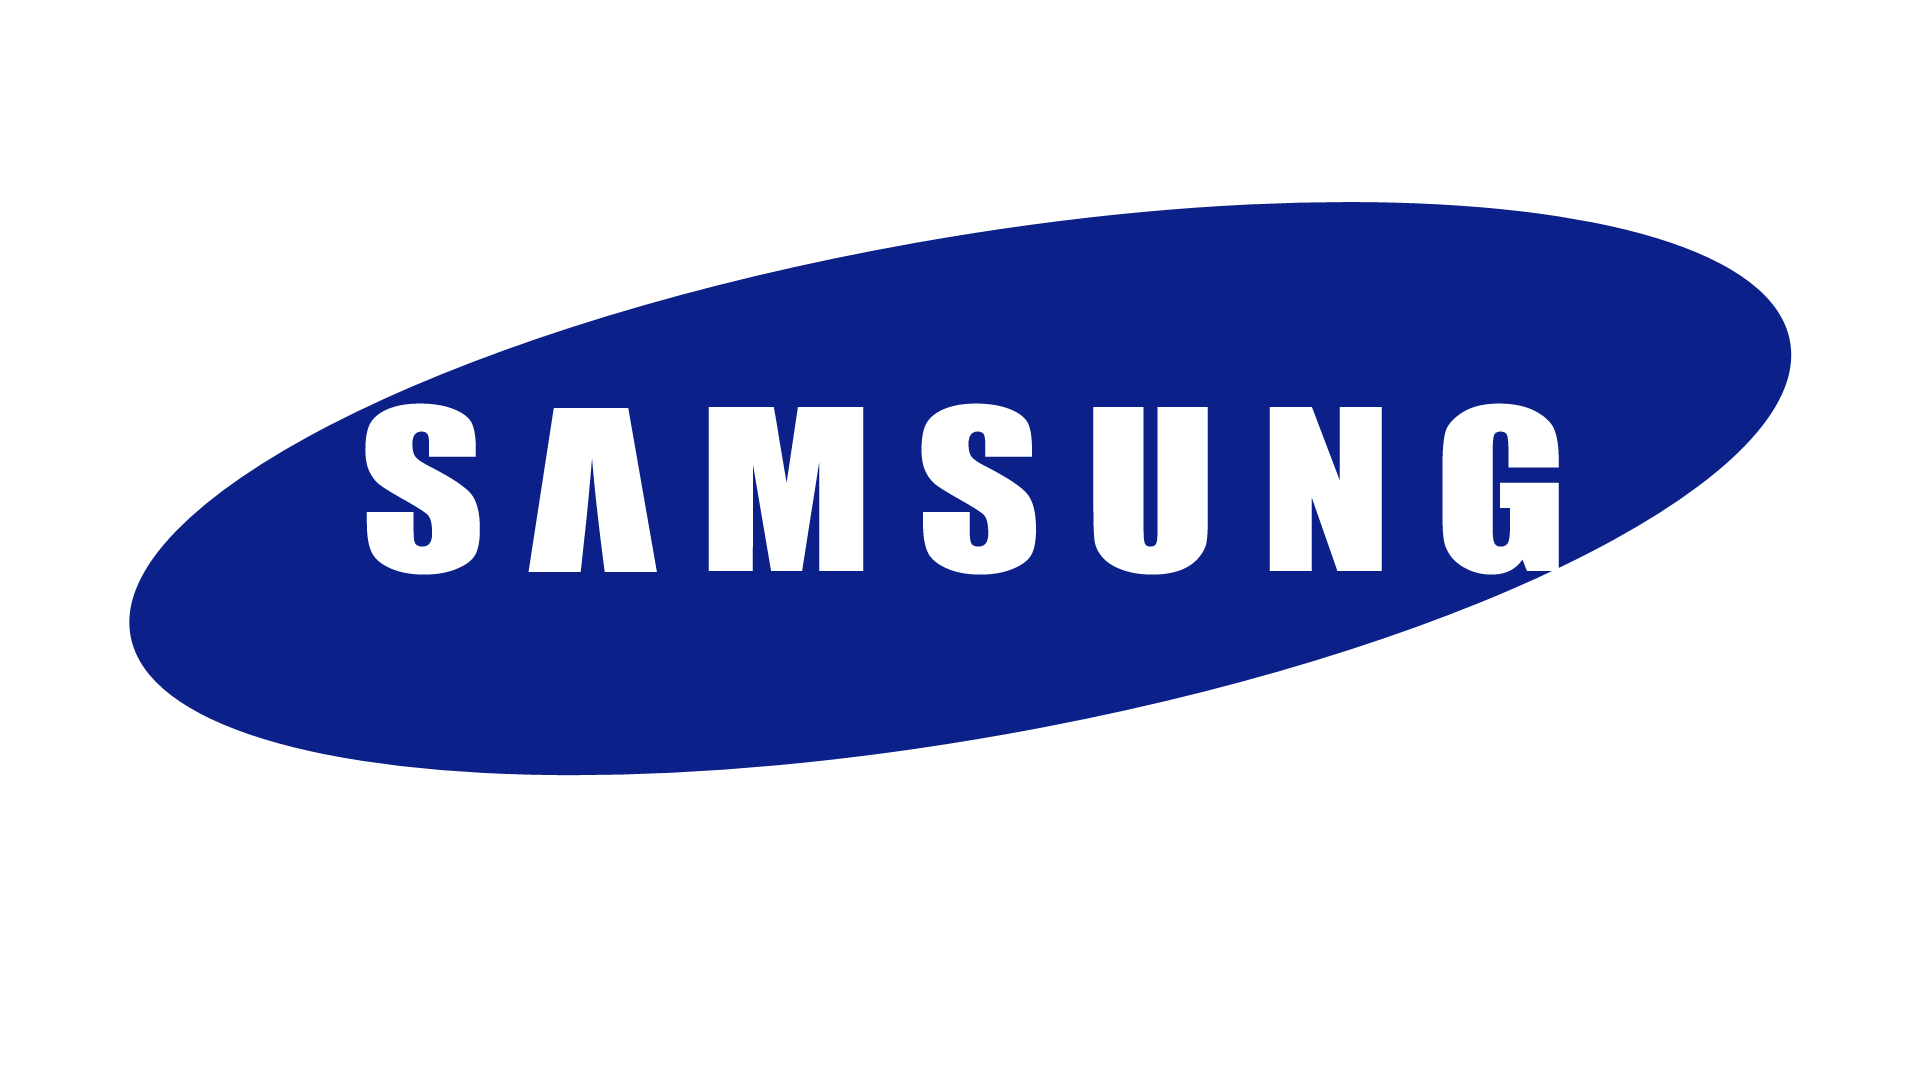 Samsung Soundbar Universal Remote Codes and Program Instructions